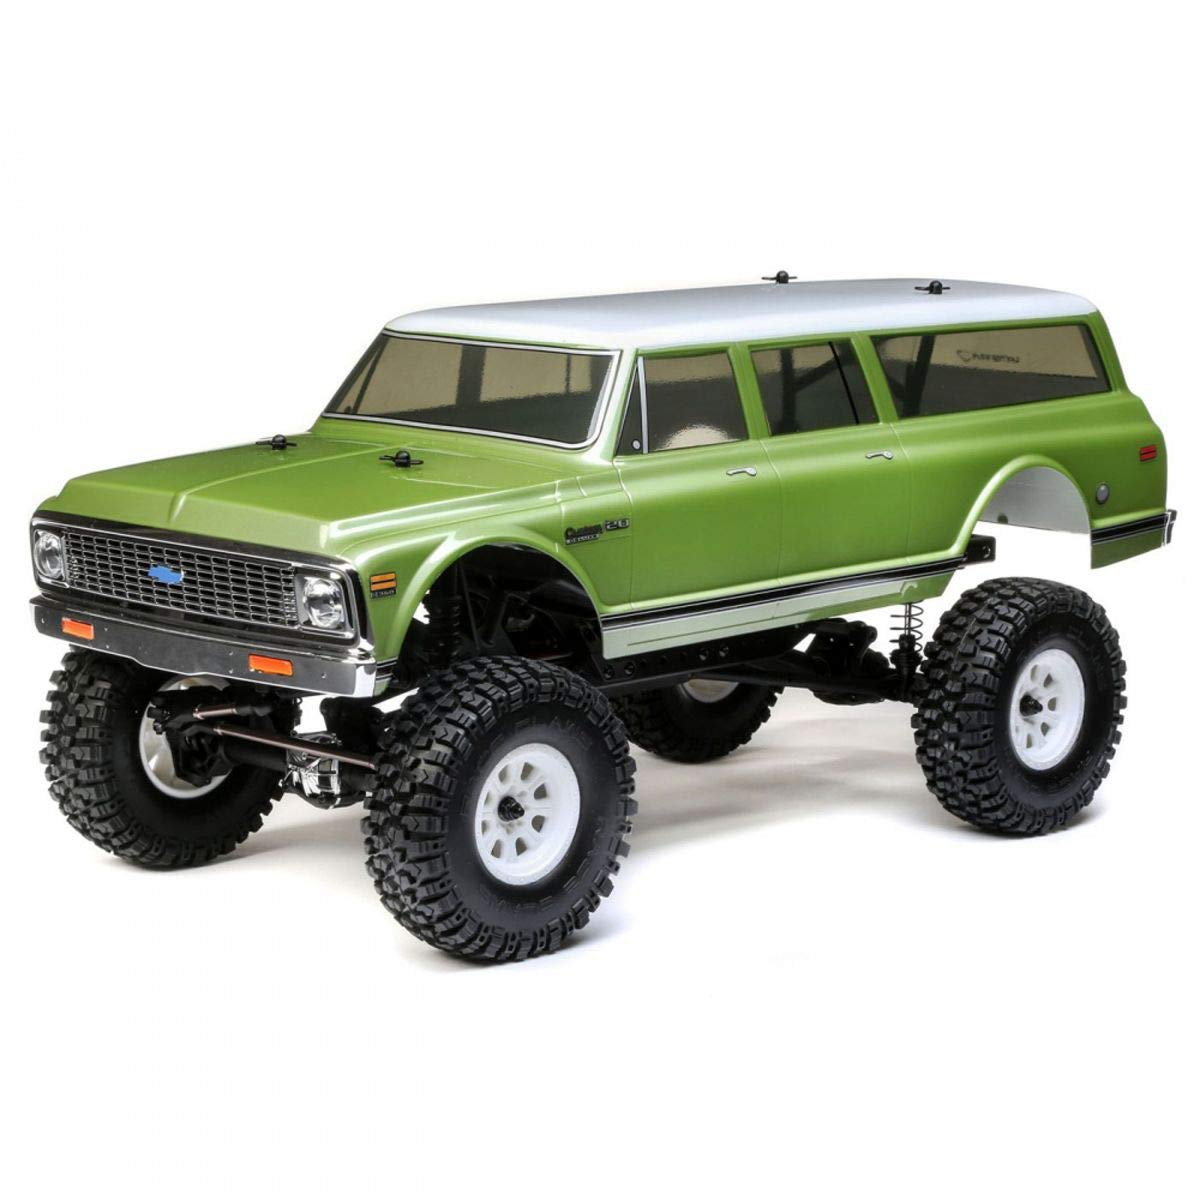 Vaterra 1 10 1972 Chevy Suburban Ascender S 4wd Rtr C10 For Sale Toys Games